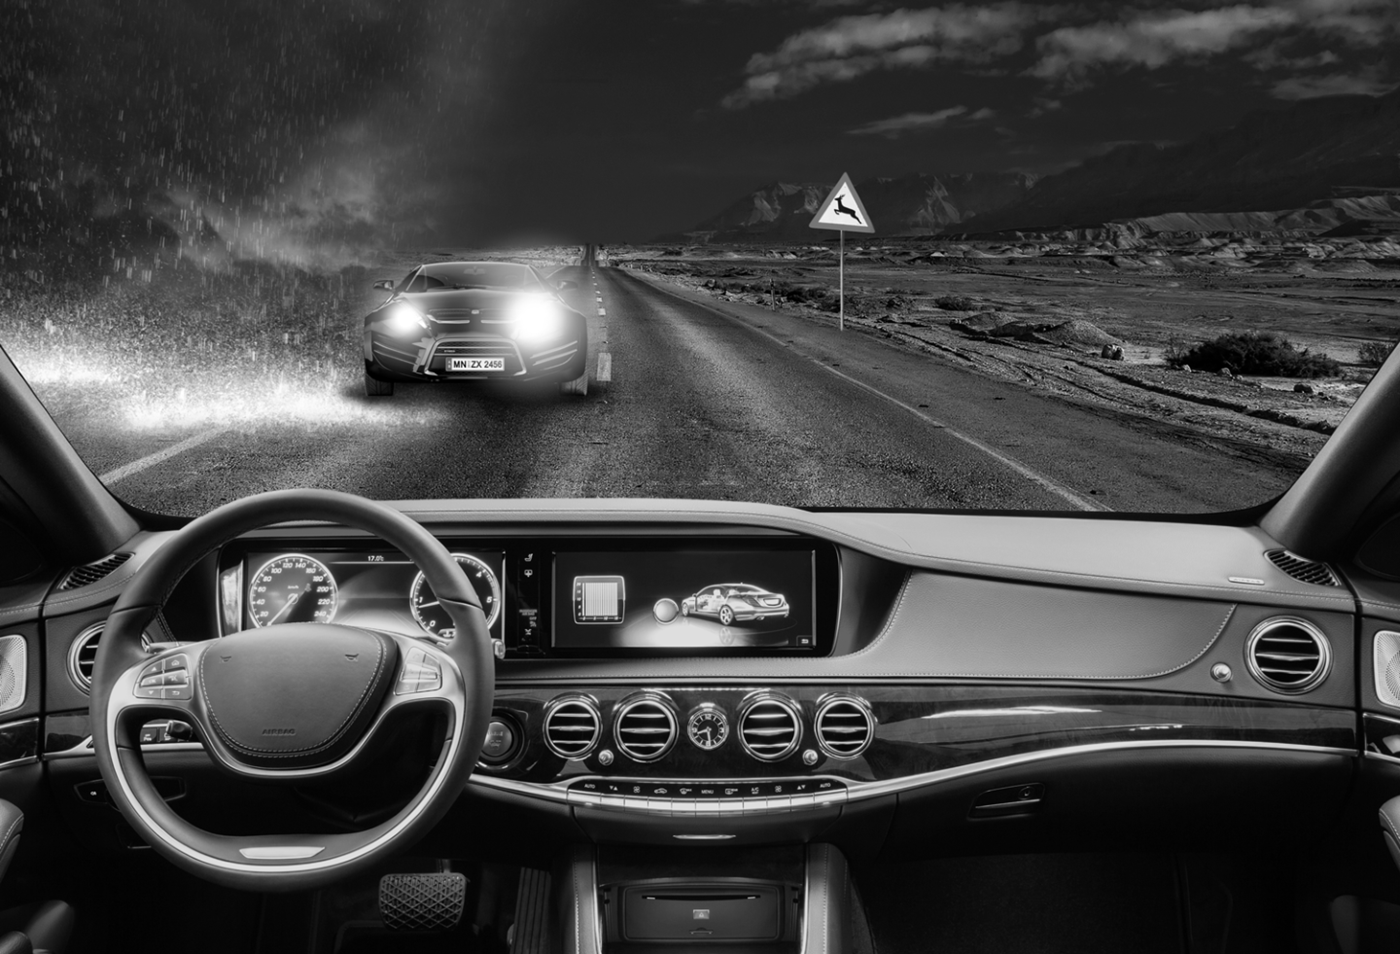 Black and white image of car dashboard